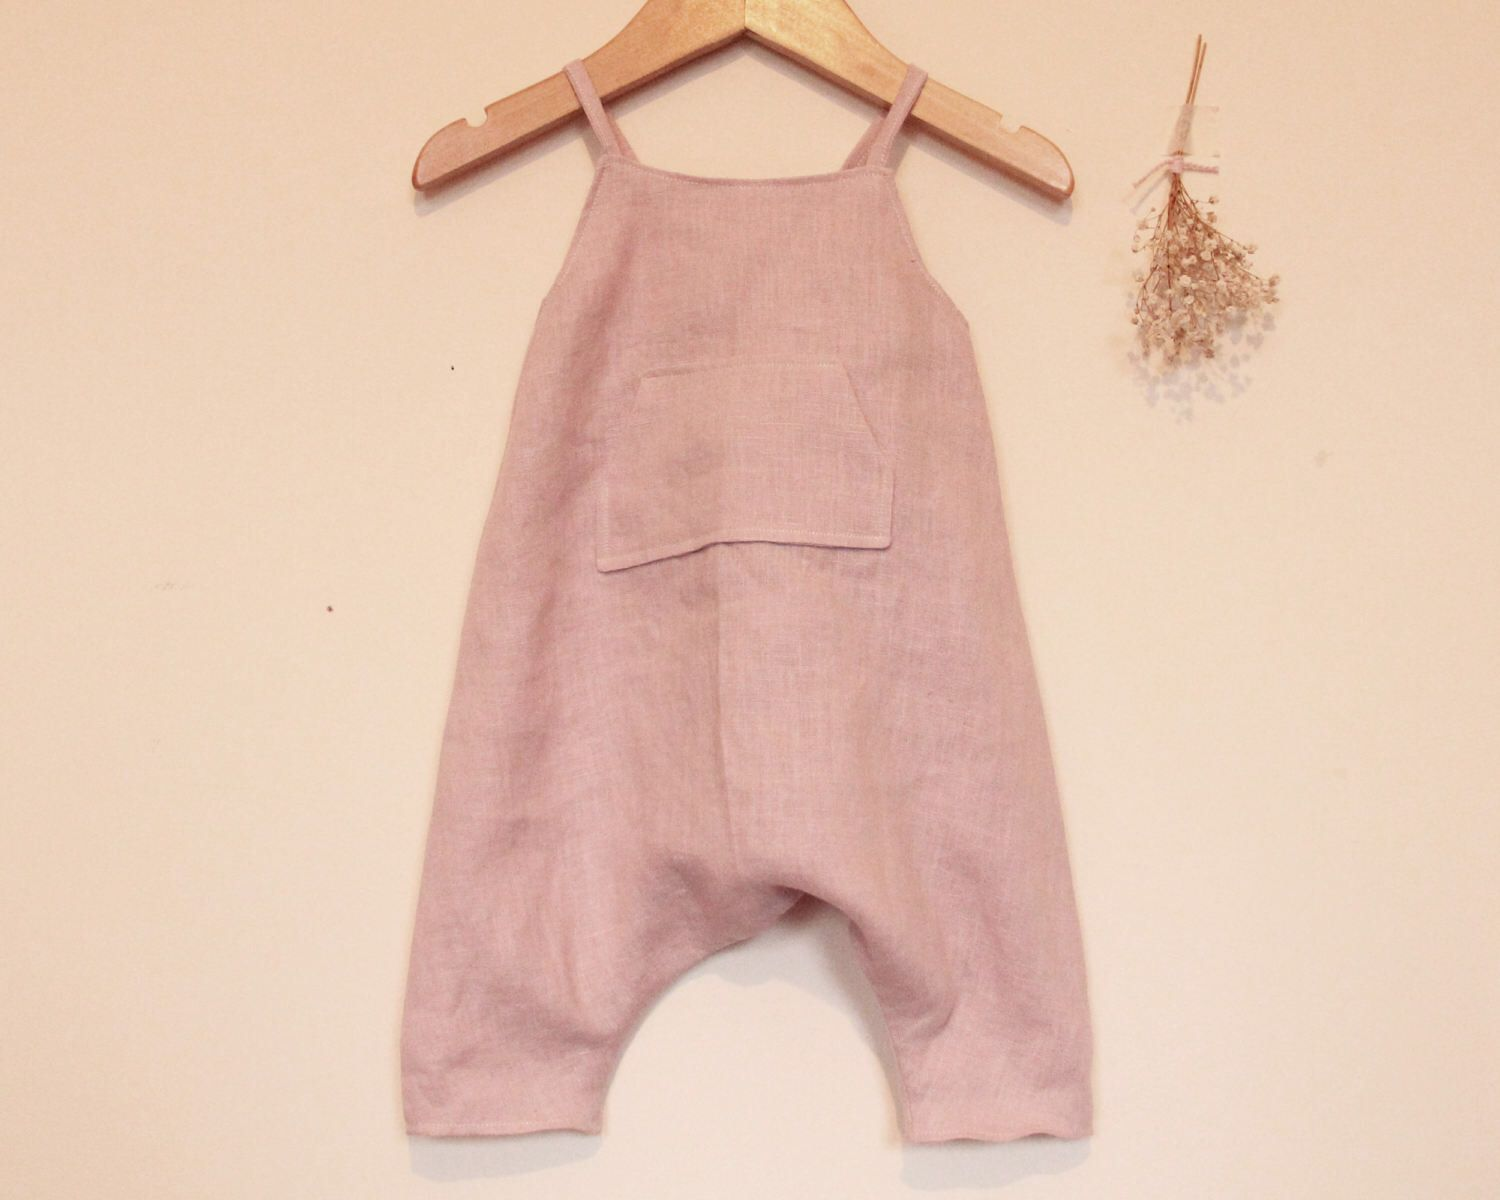 96cf709cf6bb Handmade baby romper. Light pink washed linen romper. Girls romper. Toddler  romper.